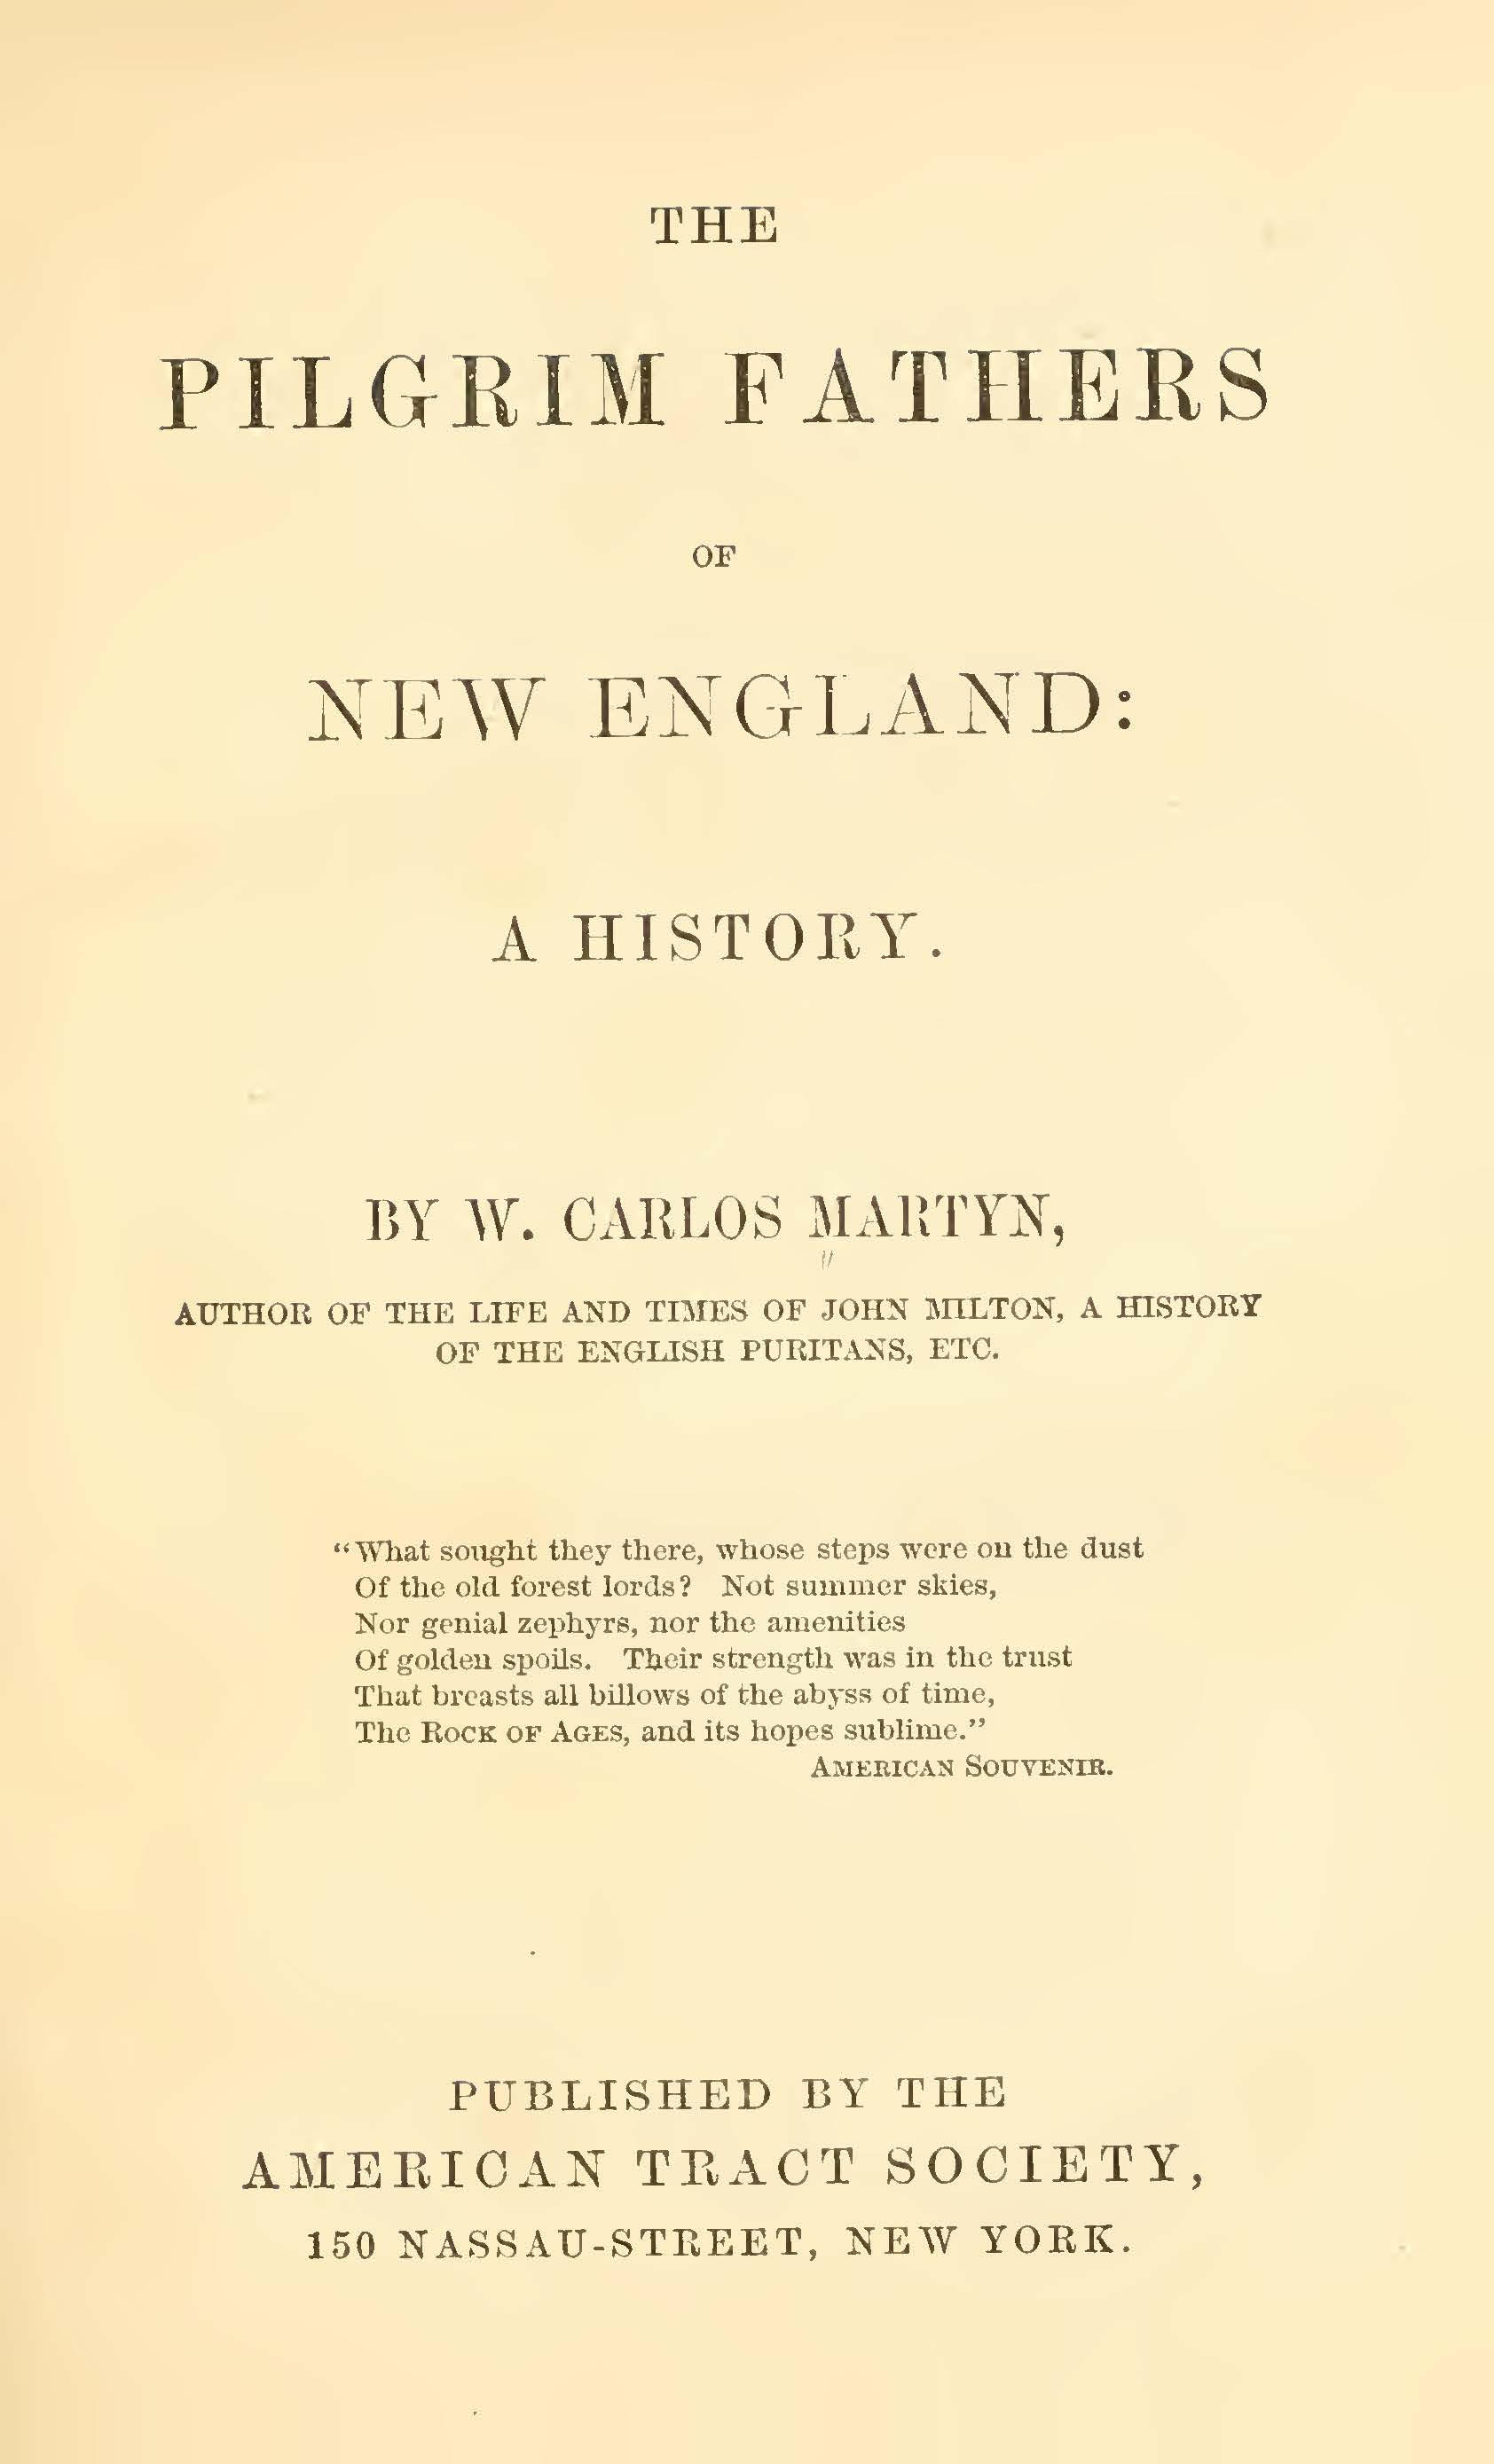 Martyn, William Carlos, The Pilgrim Fathers of New England A History Title Page.jpg